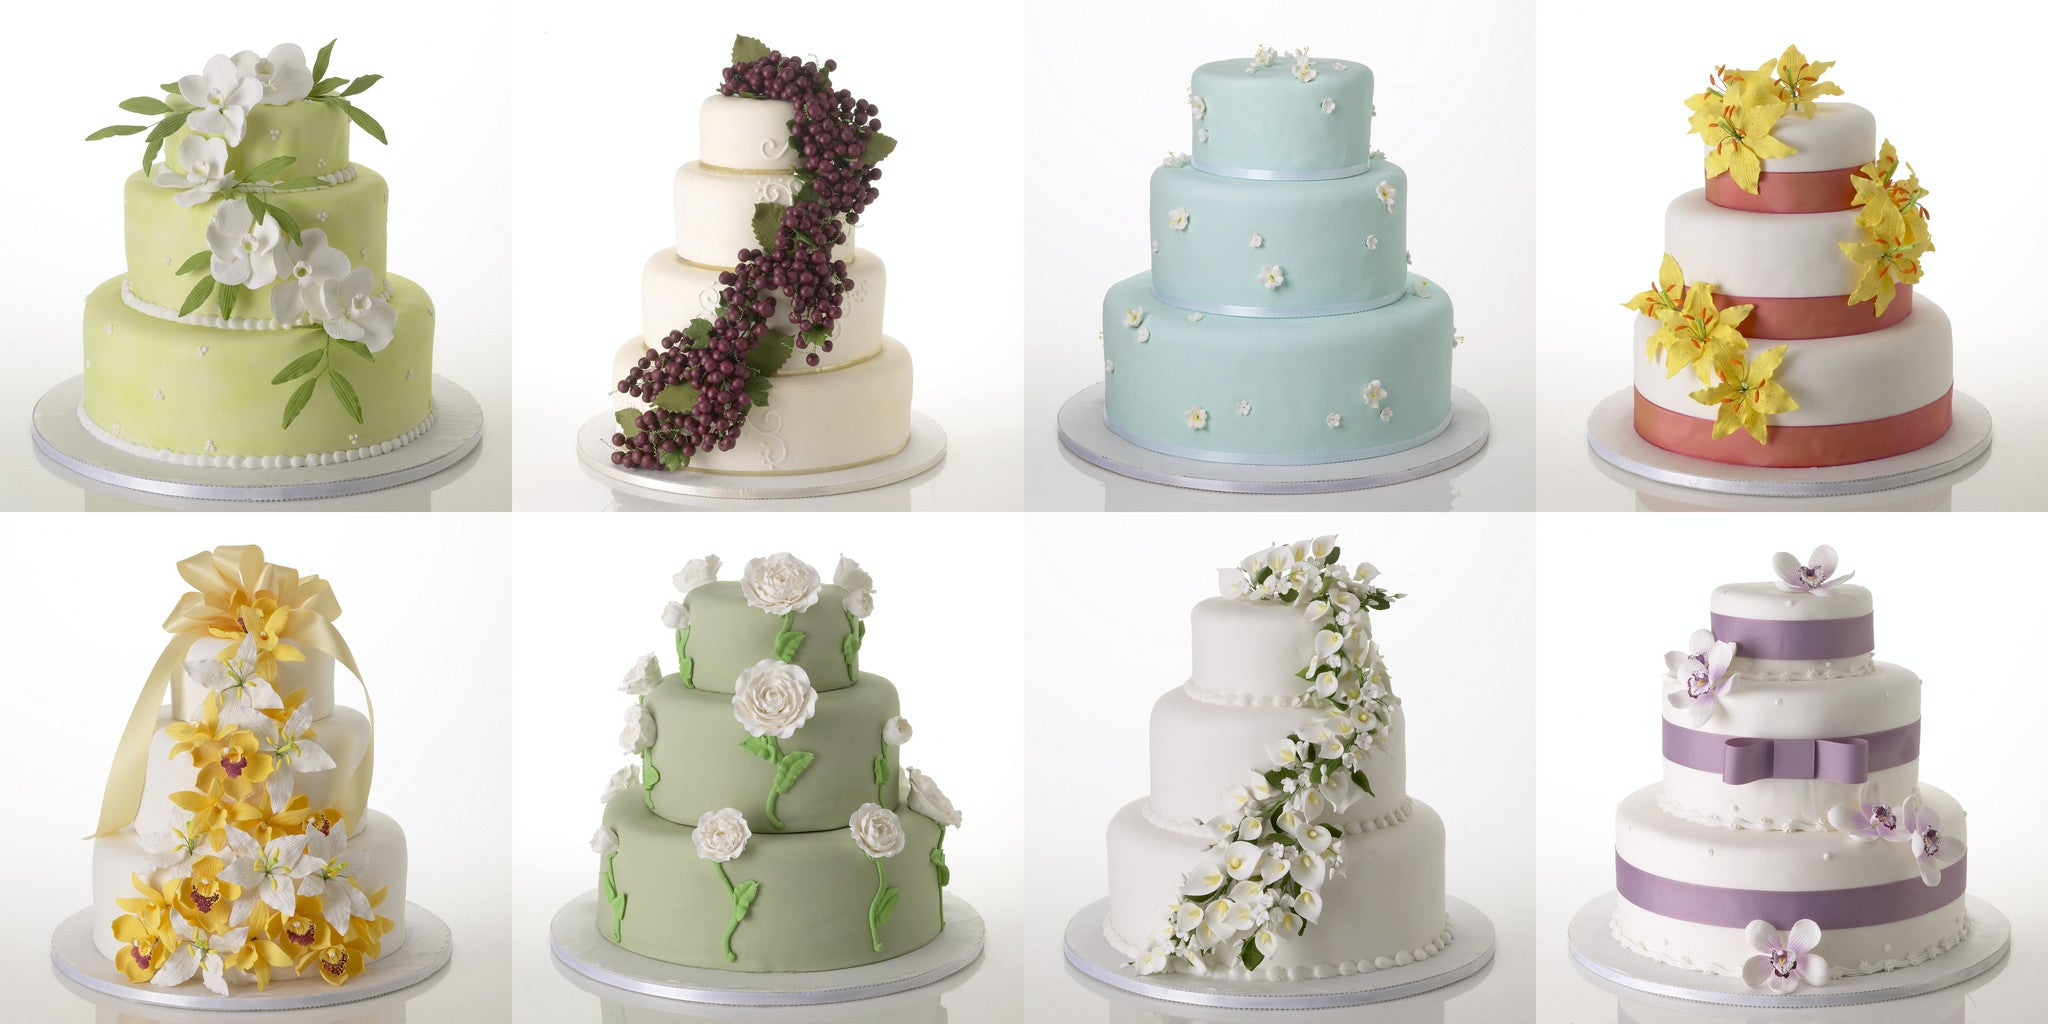 Pre Made Royal Icing Cake Decorations